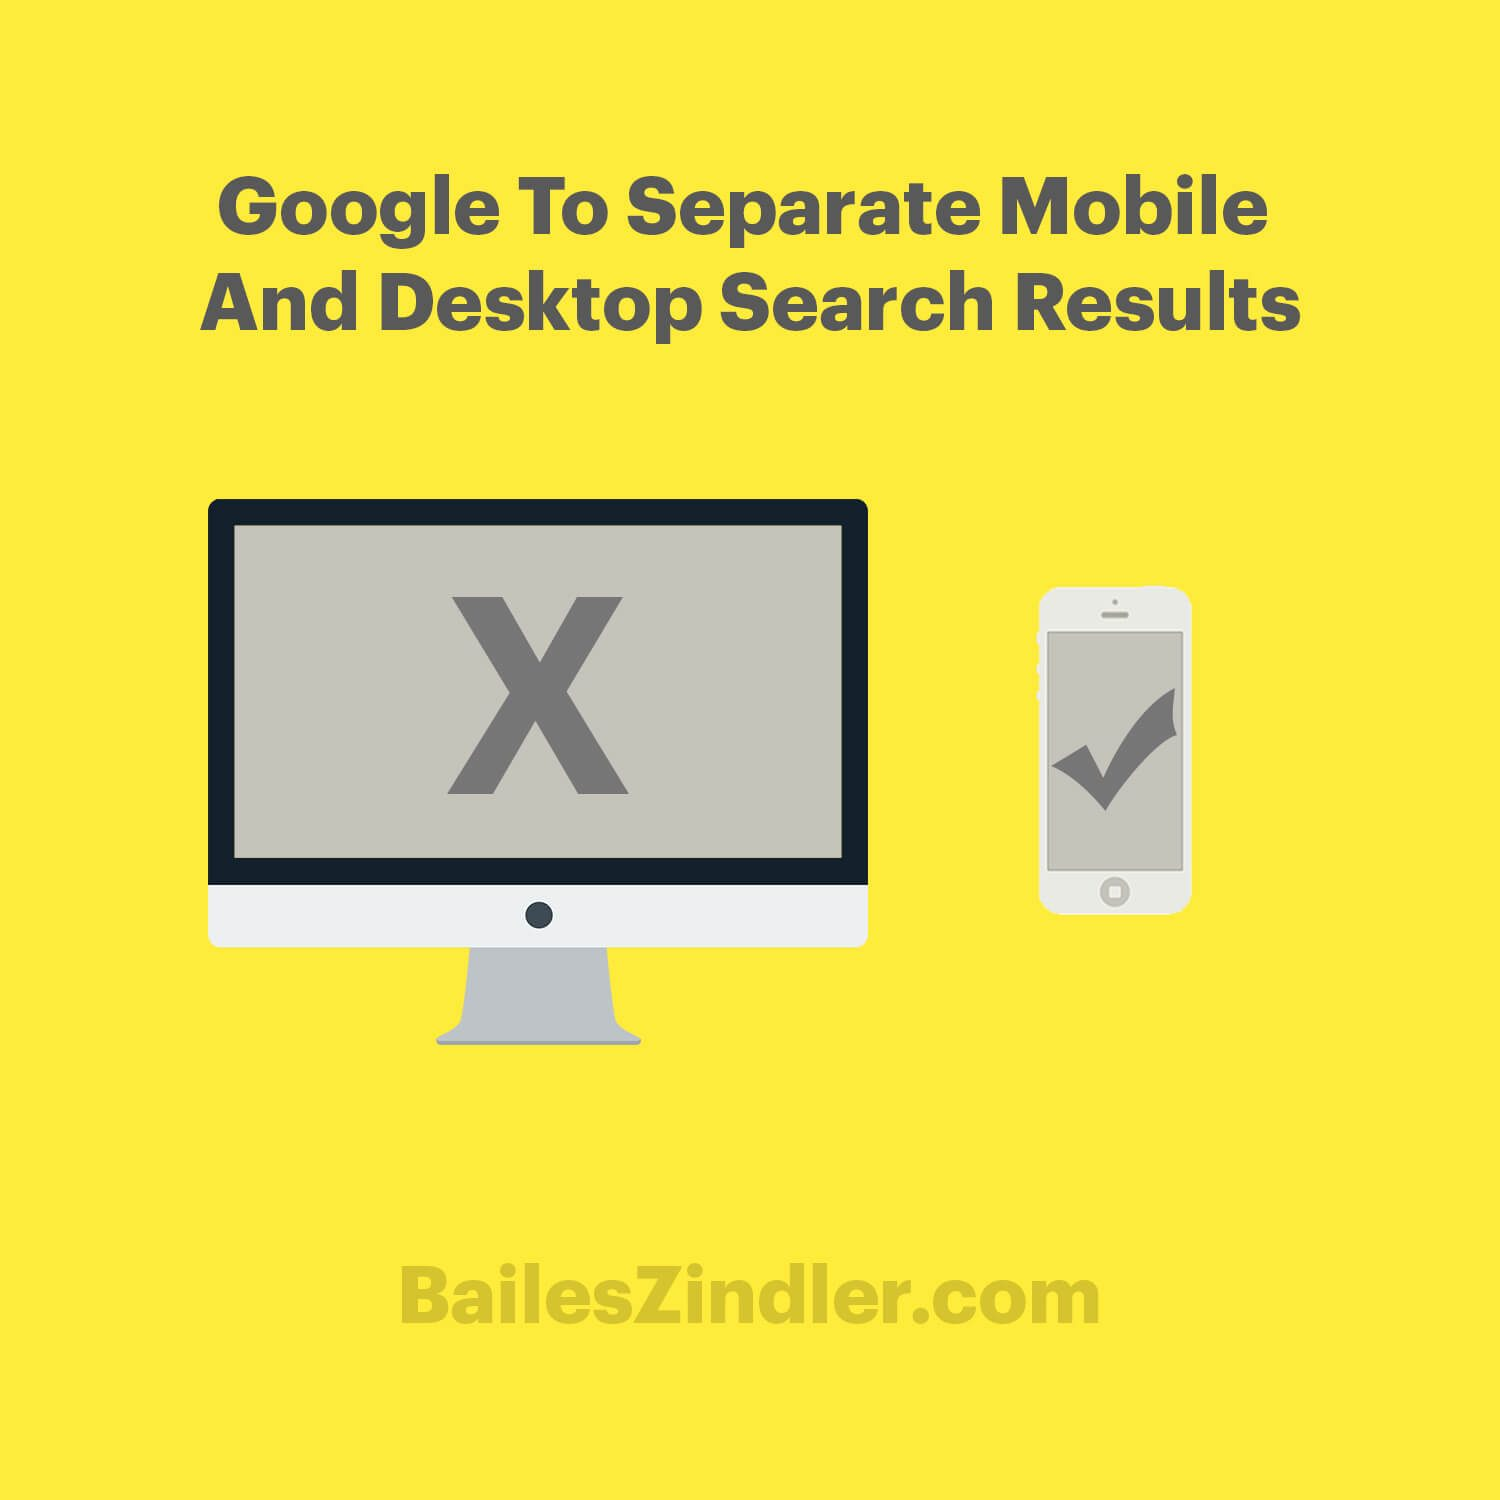 google to separate mobile and desktop search results